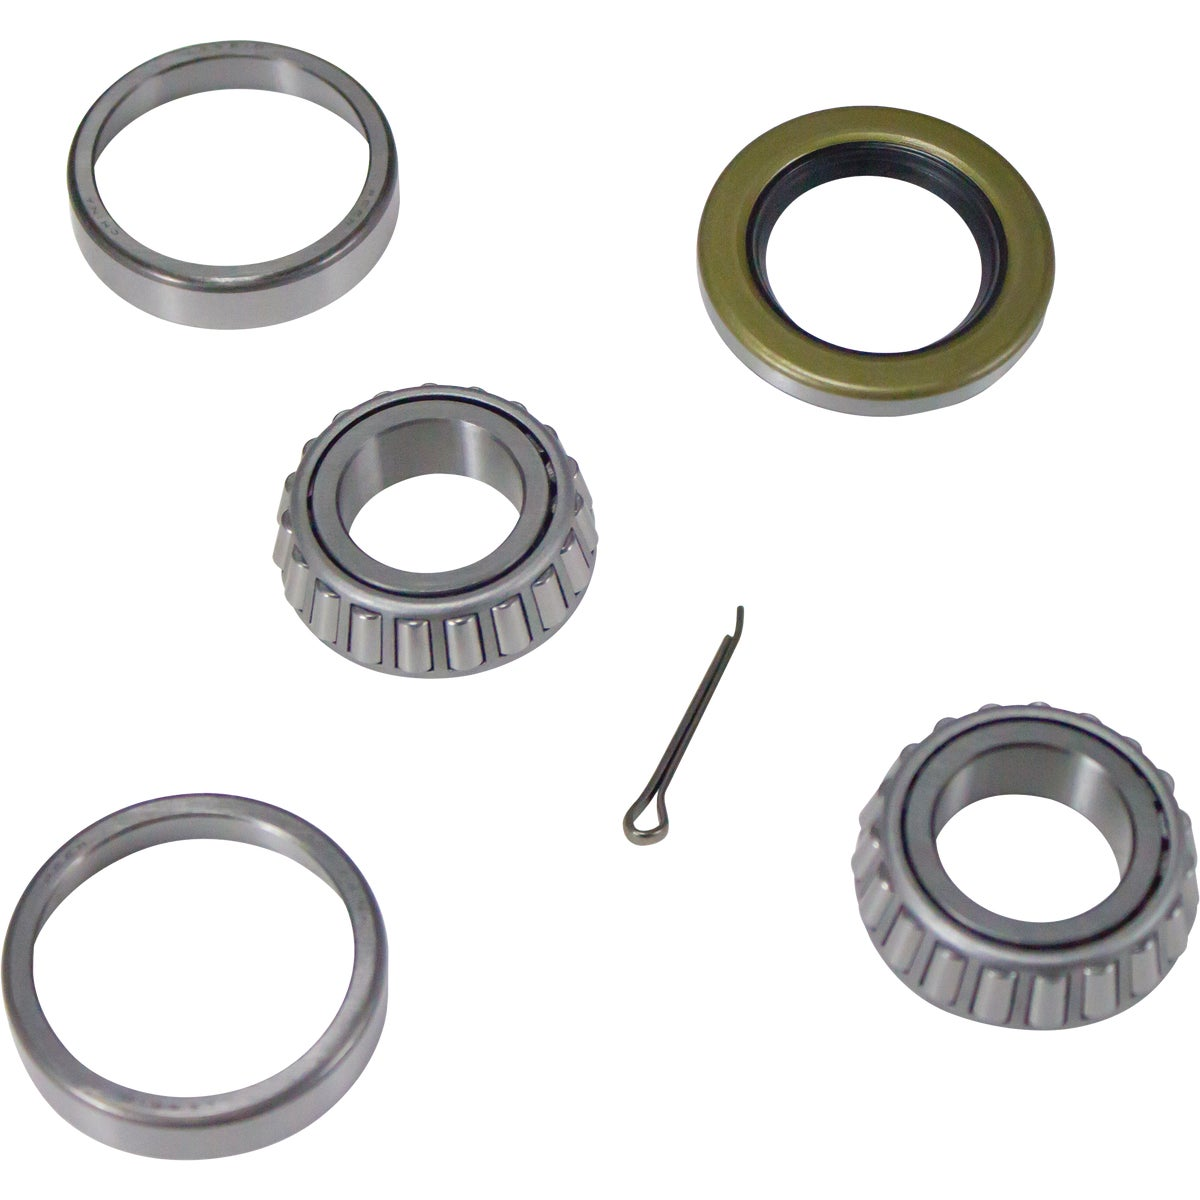 "1"" BEARING SET - 6502 by Dutton Lainson Co"